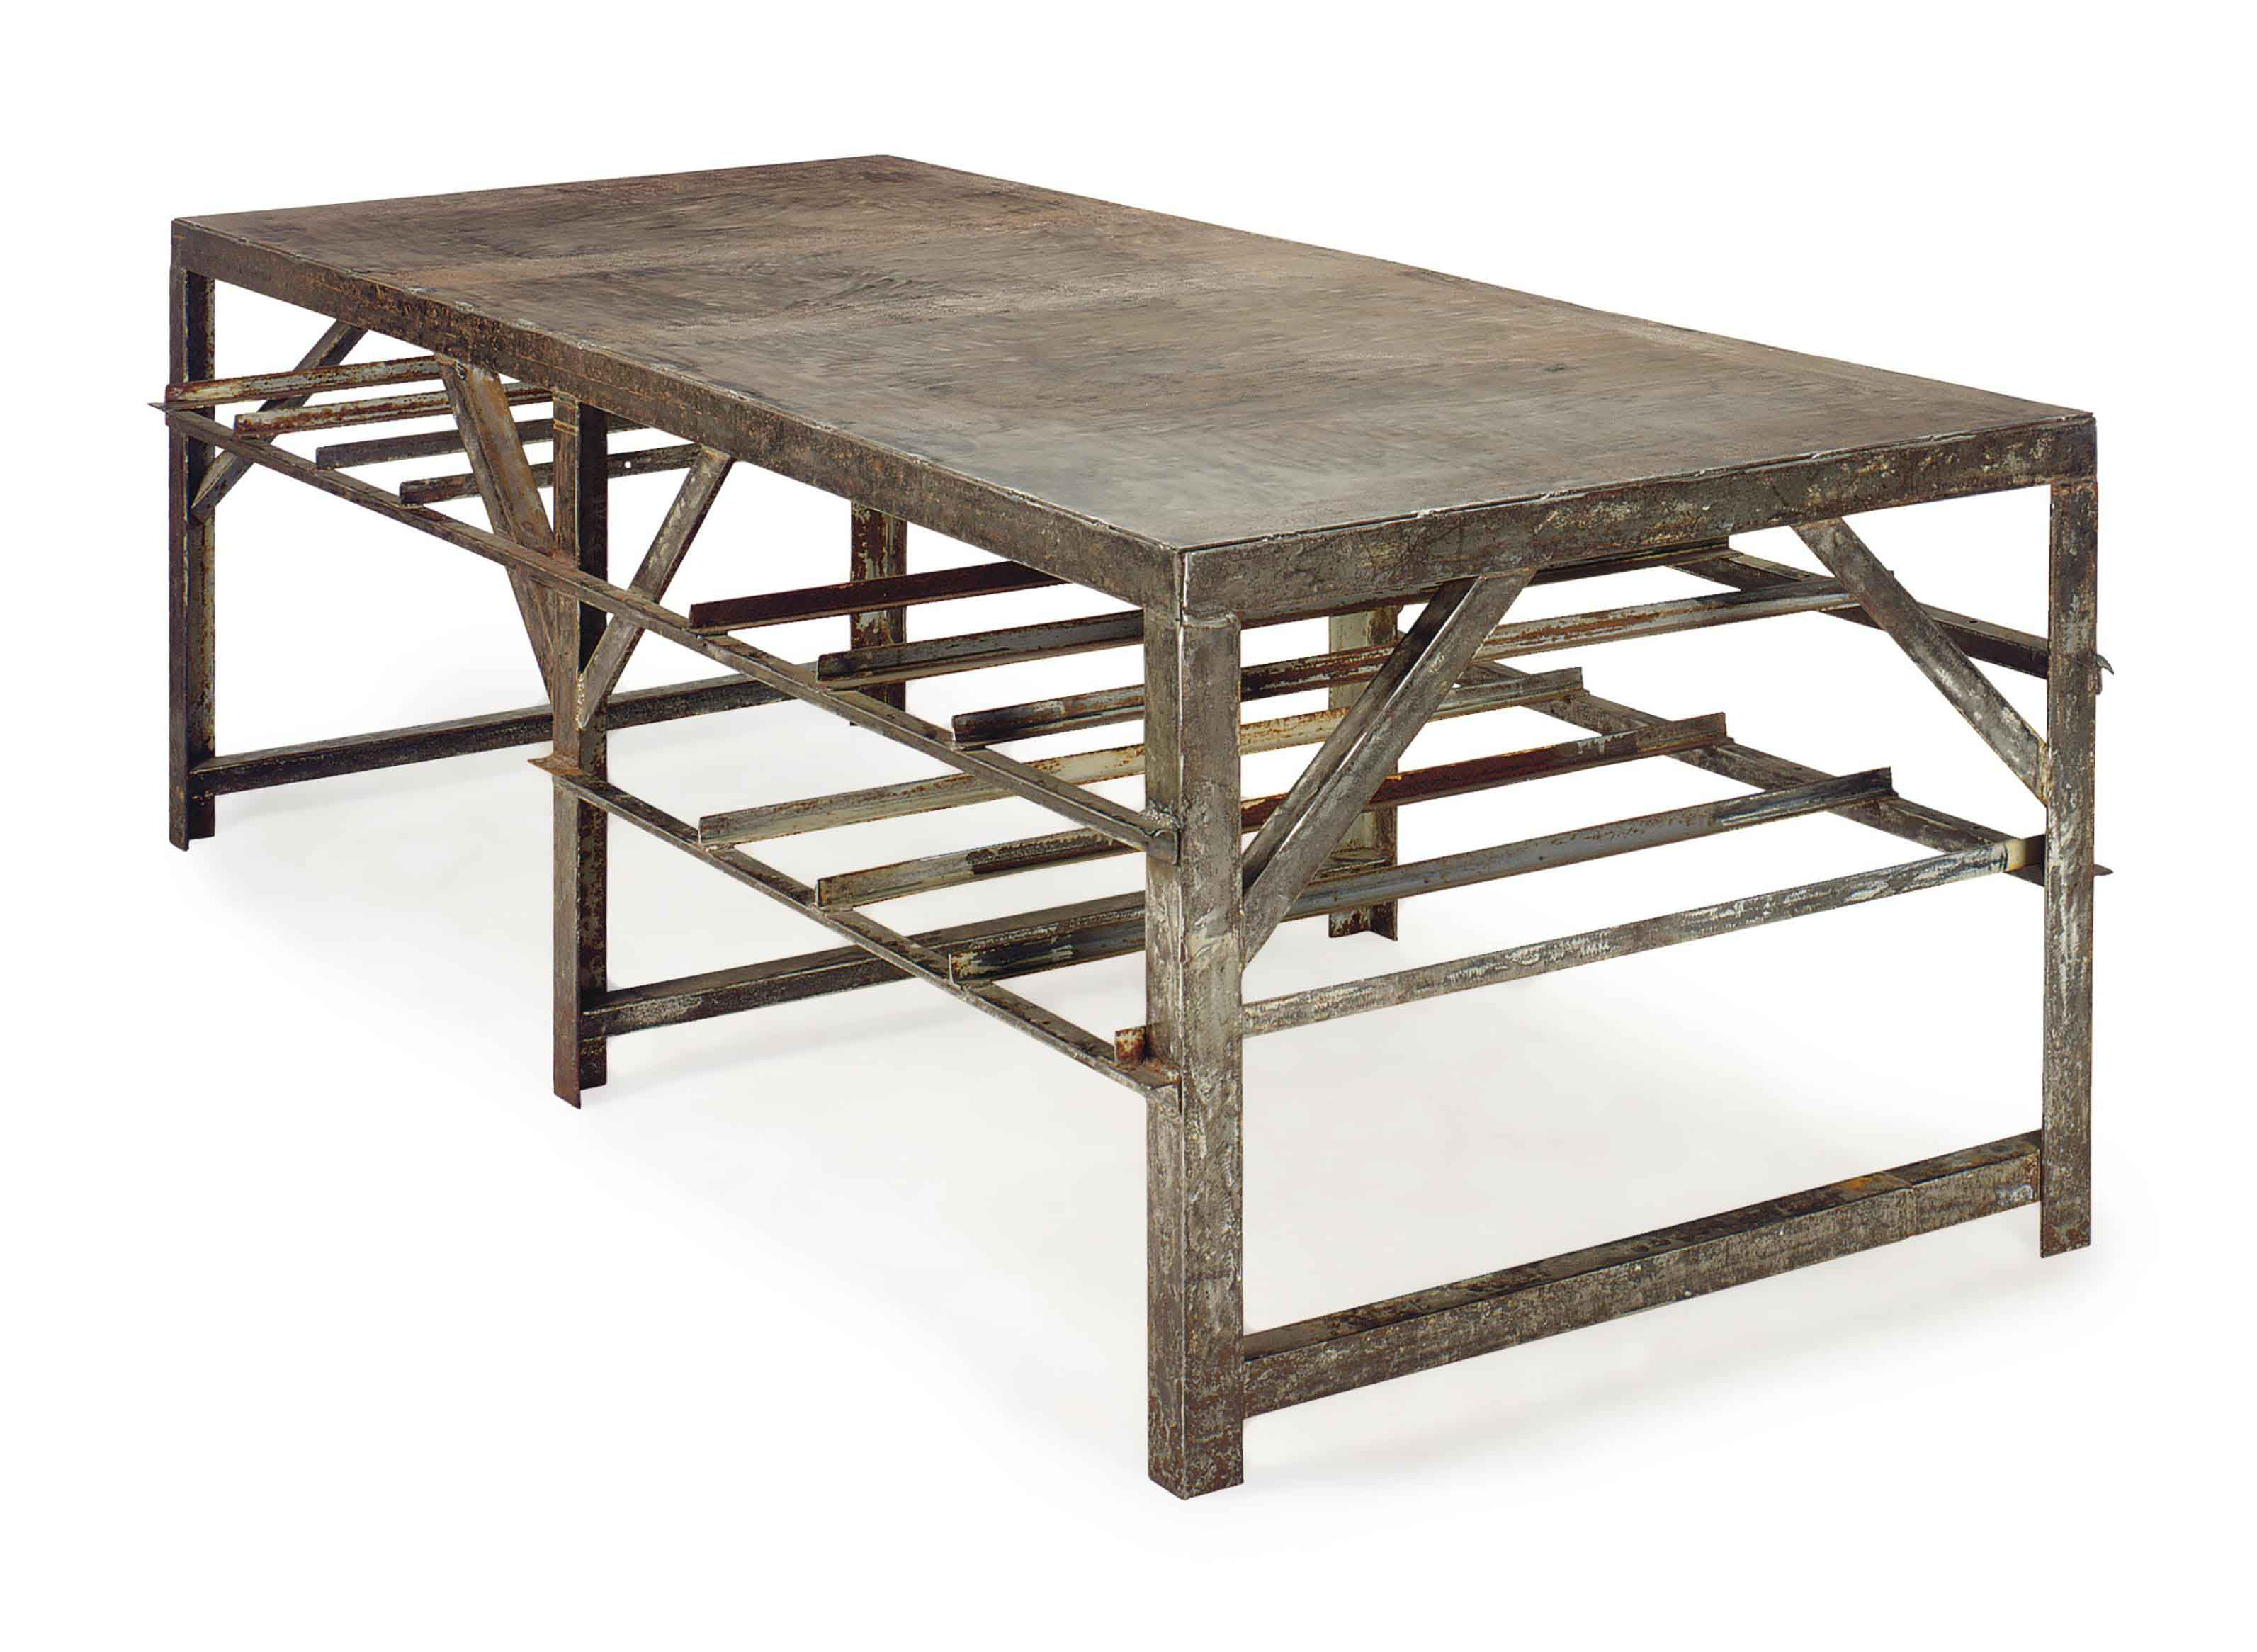 A FRENCH INDUSTRIAL STEEL LONG WORK TABLE,